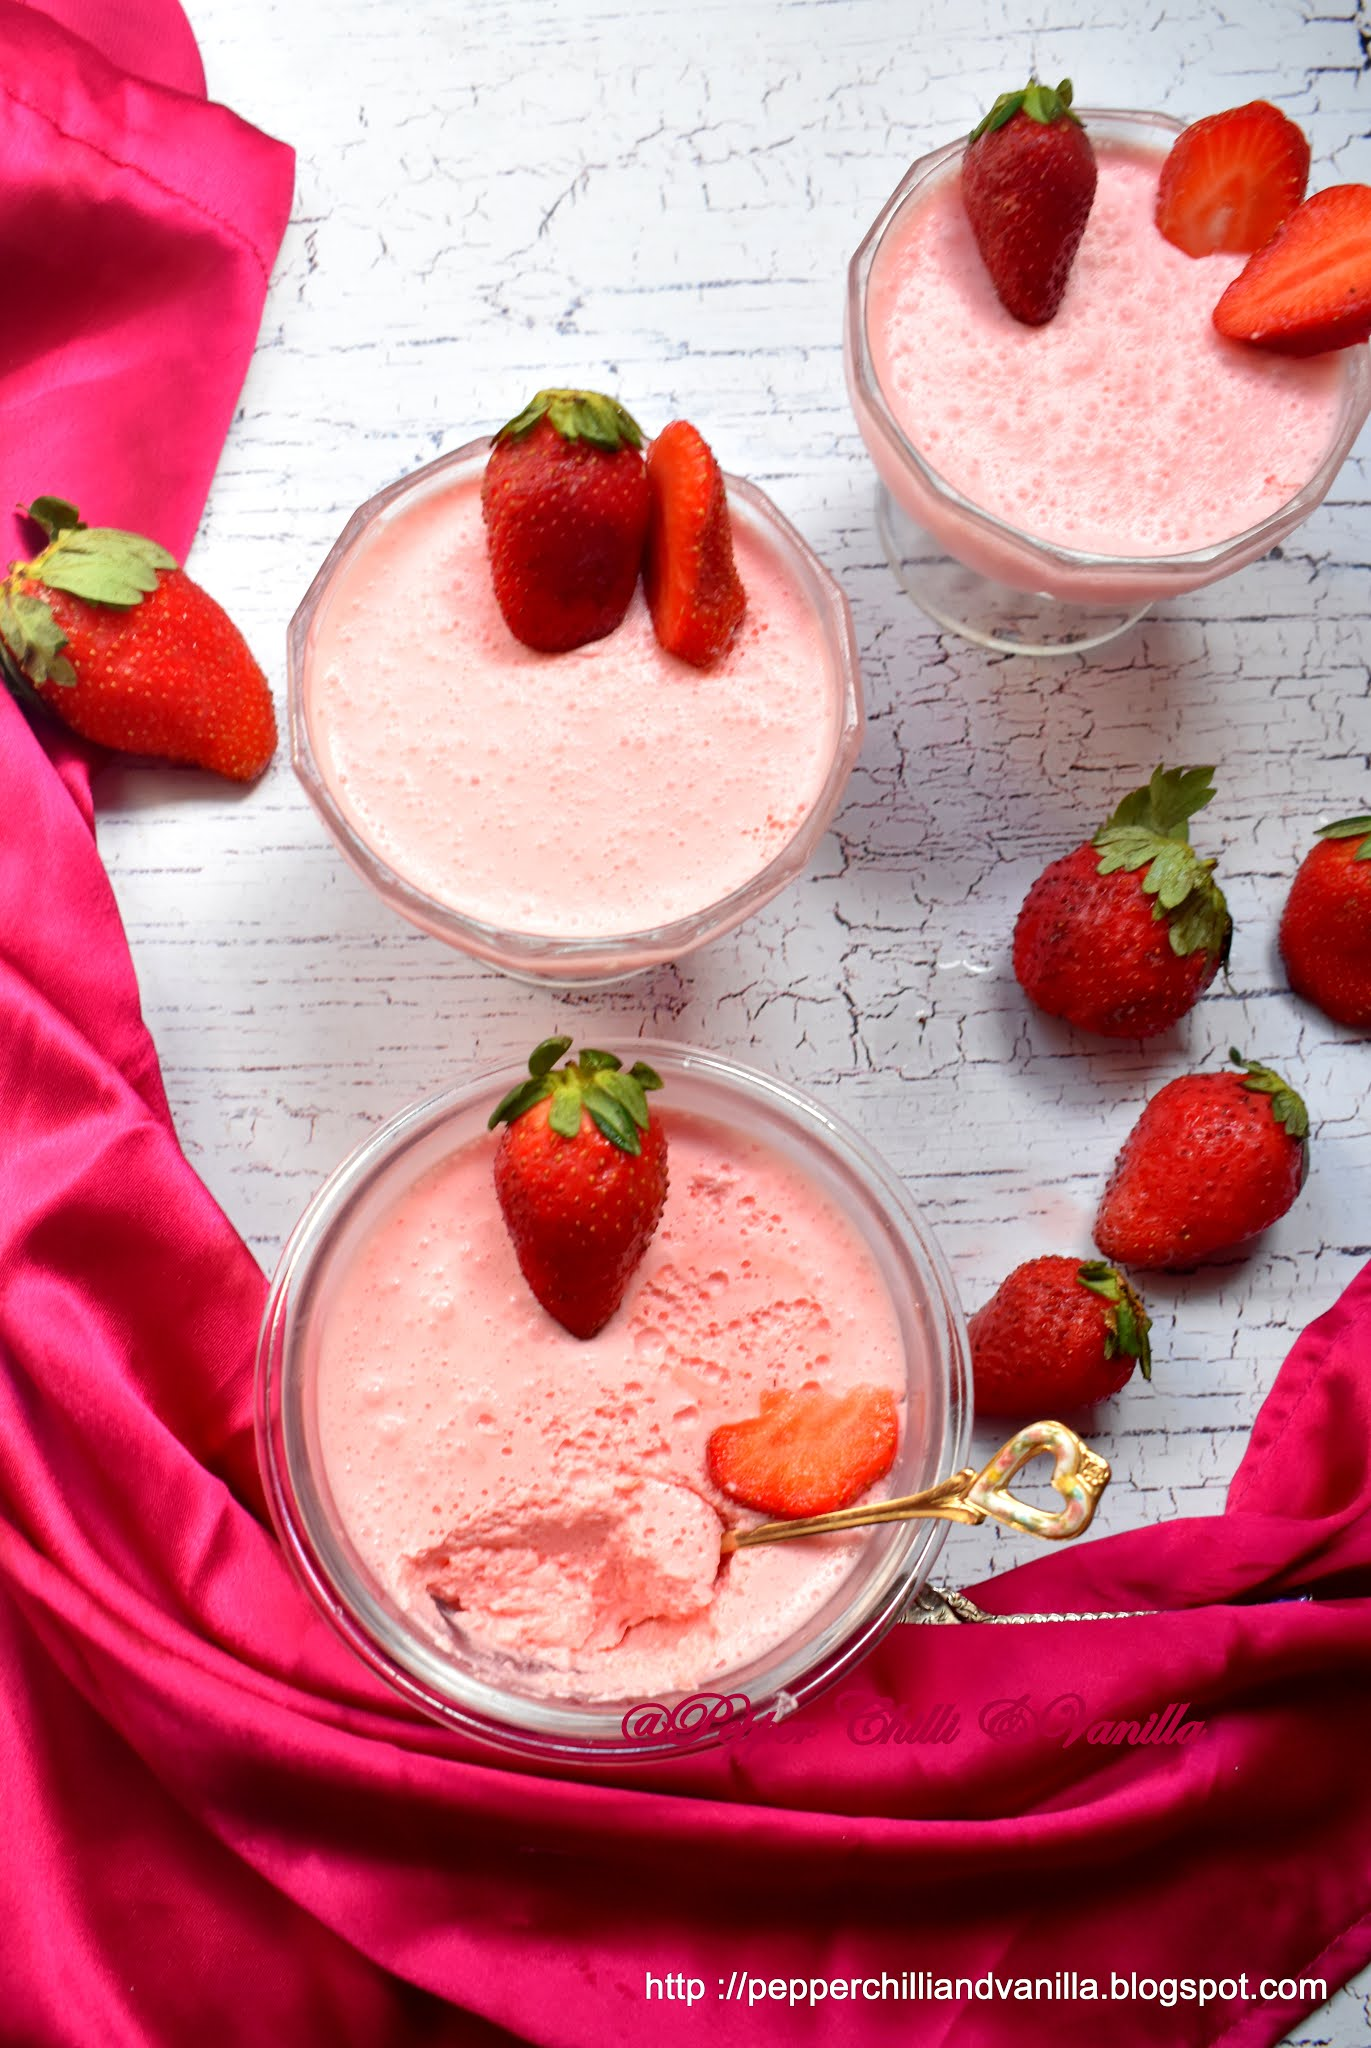 how to make strawberry mousse pudding,strawberry jello pudding